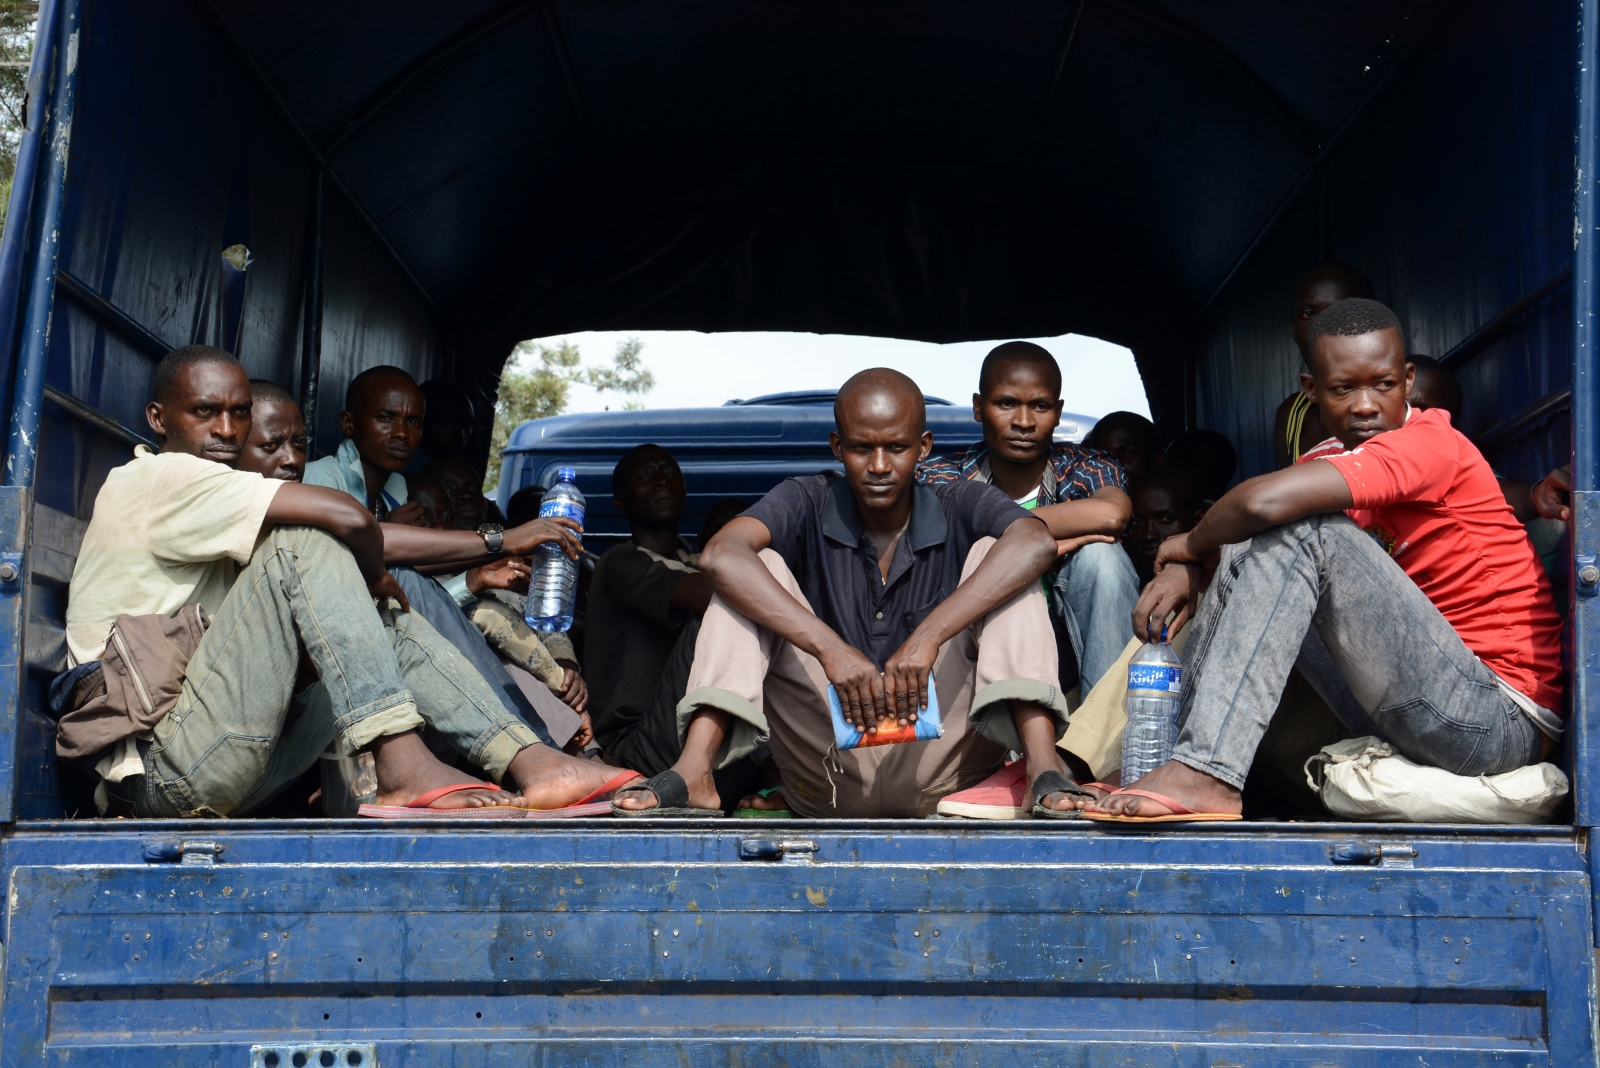 'We are ready for war' – Burundi's rebel groups and how they plan to topple President Nkurunziza